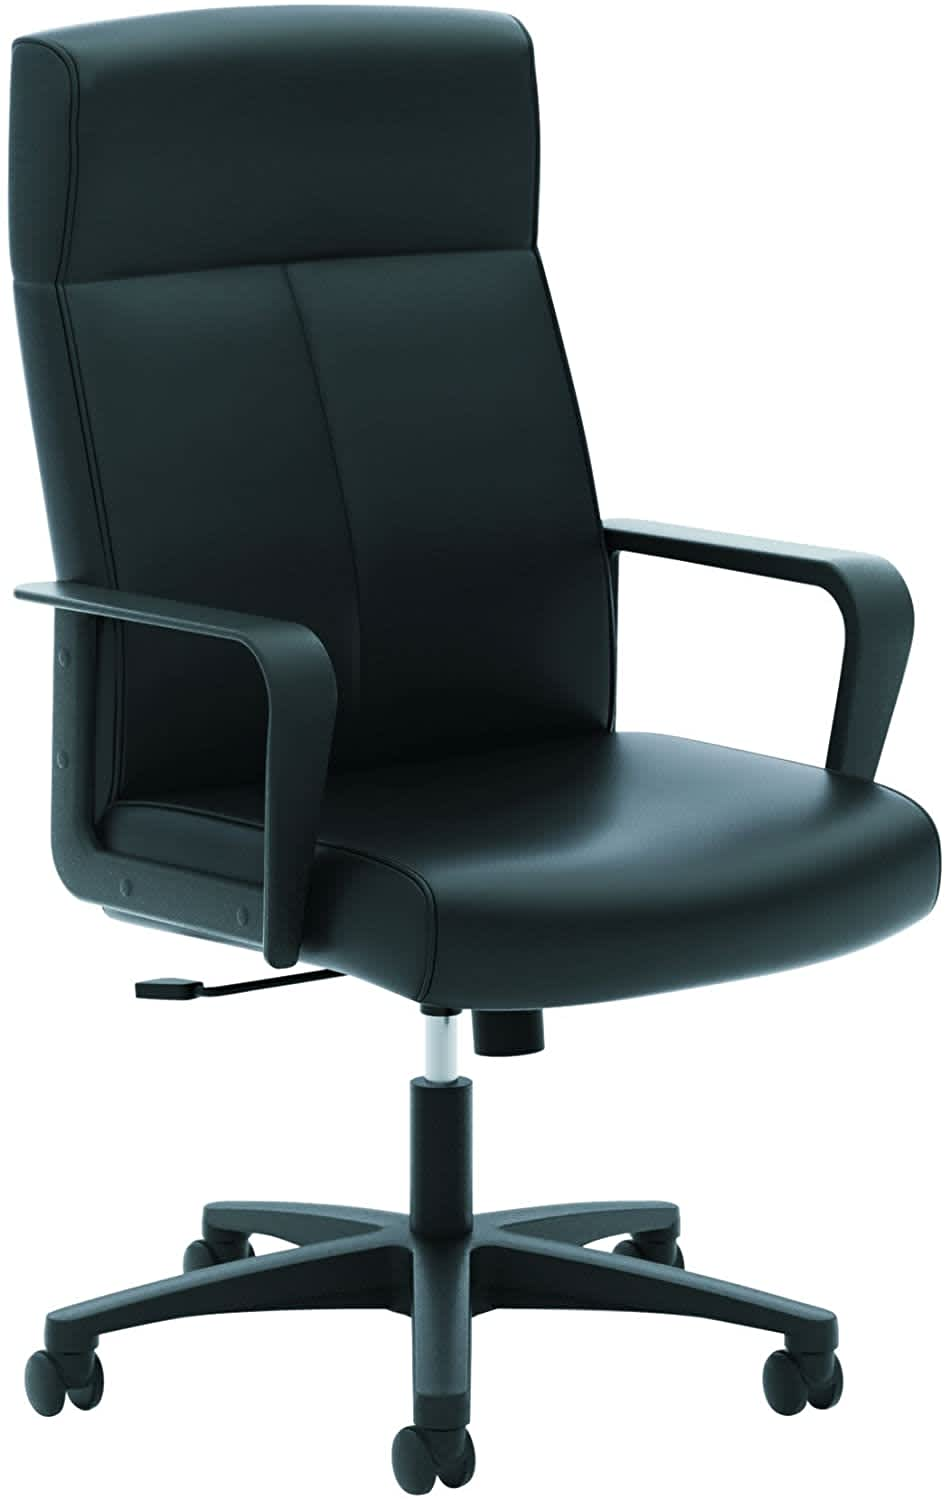 HON Validate SofThread PU Leather Executive Chair